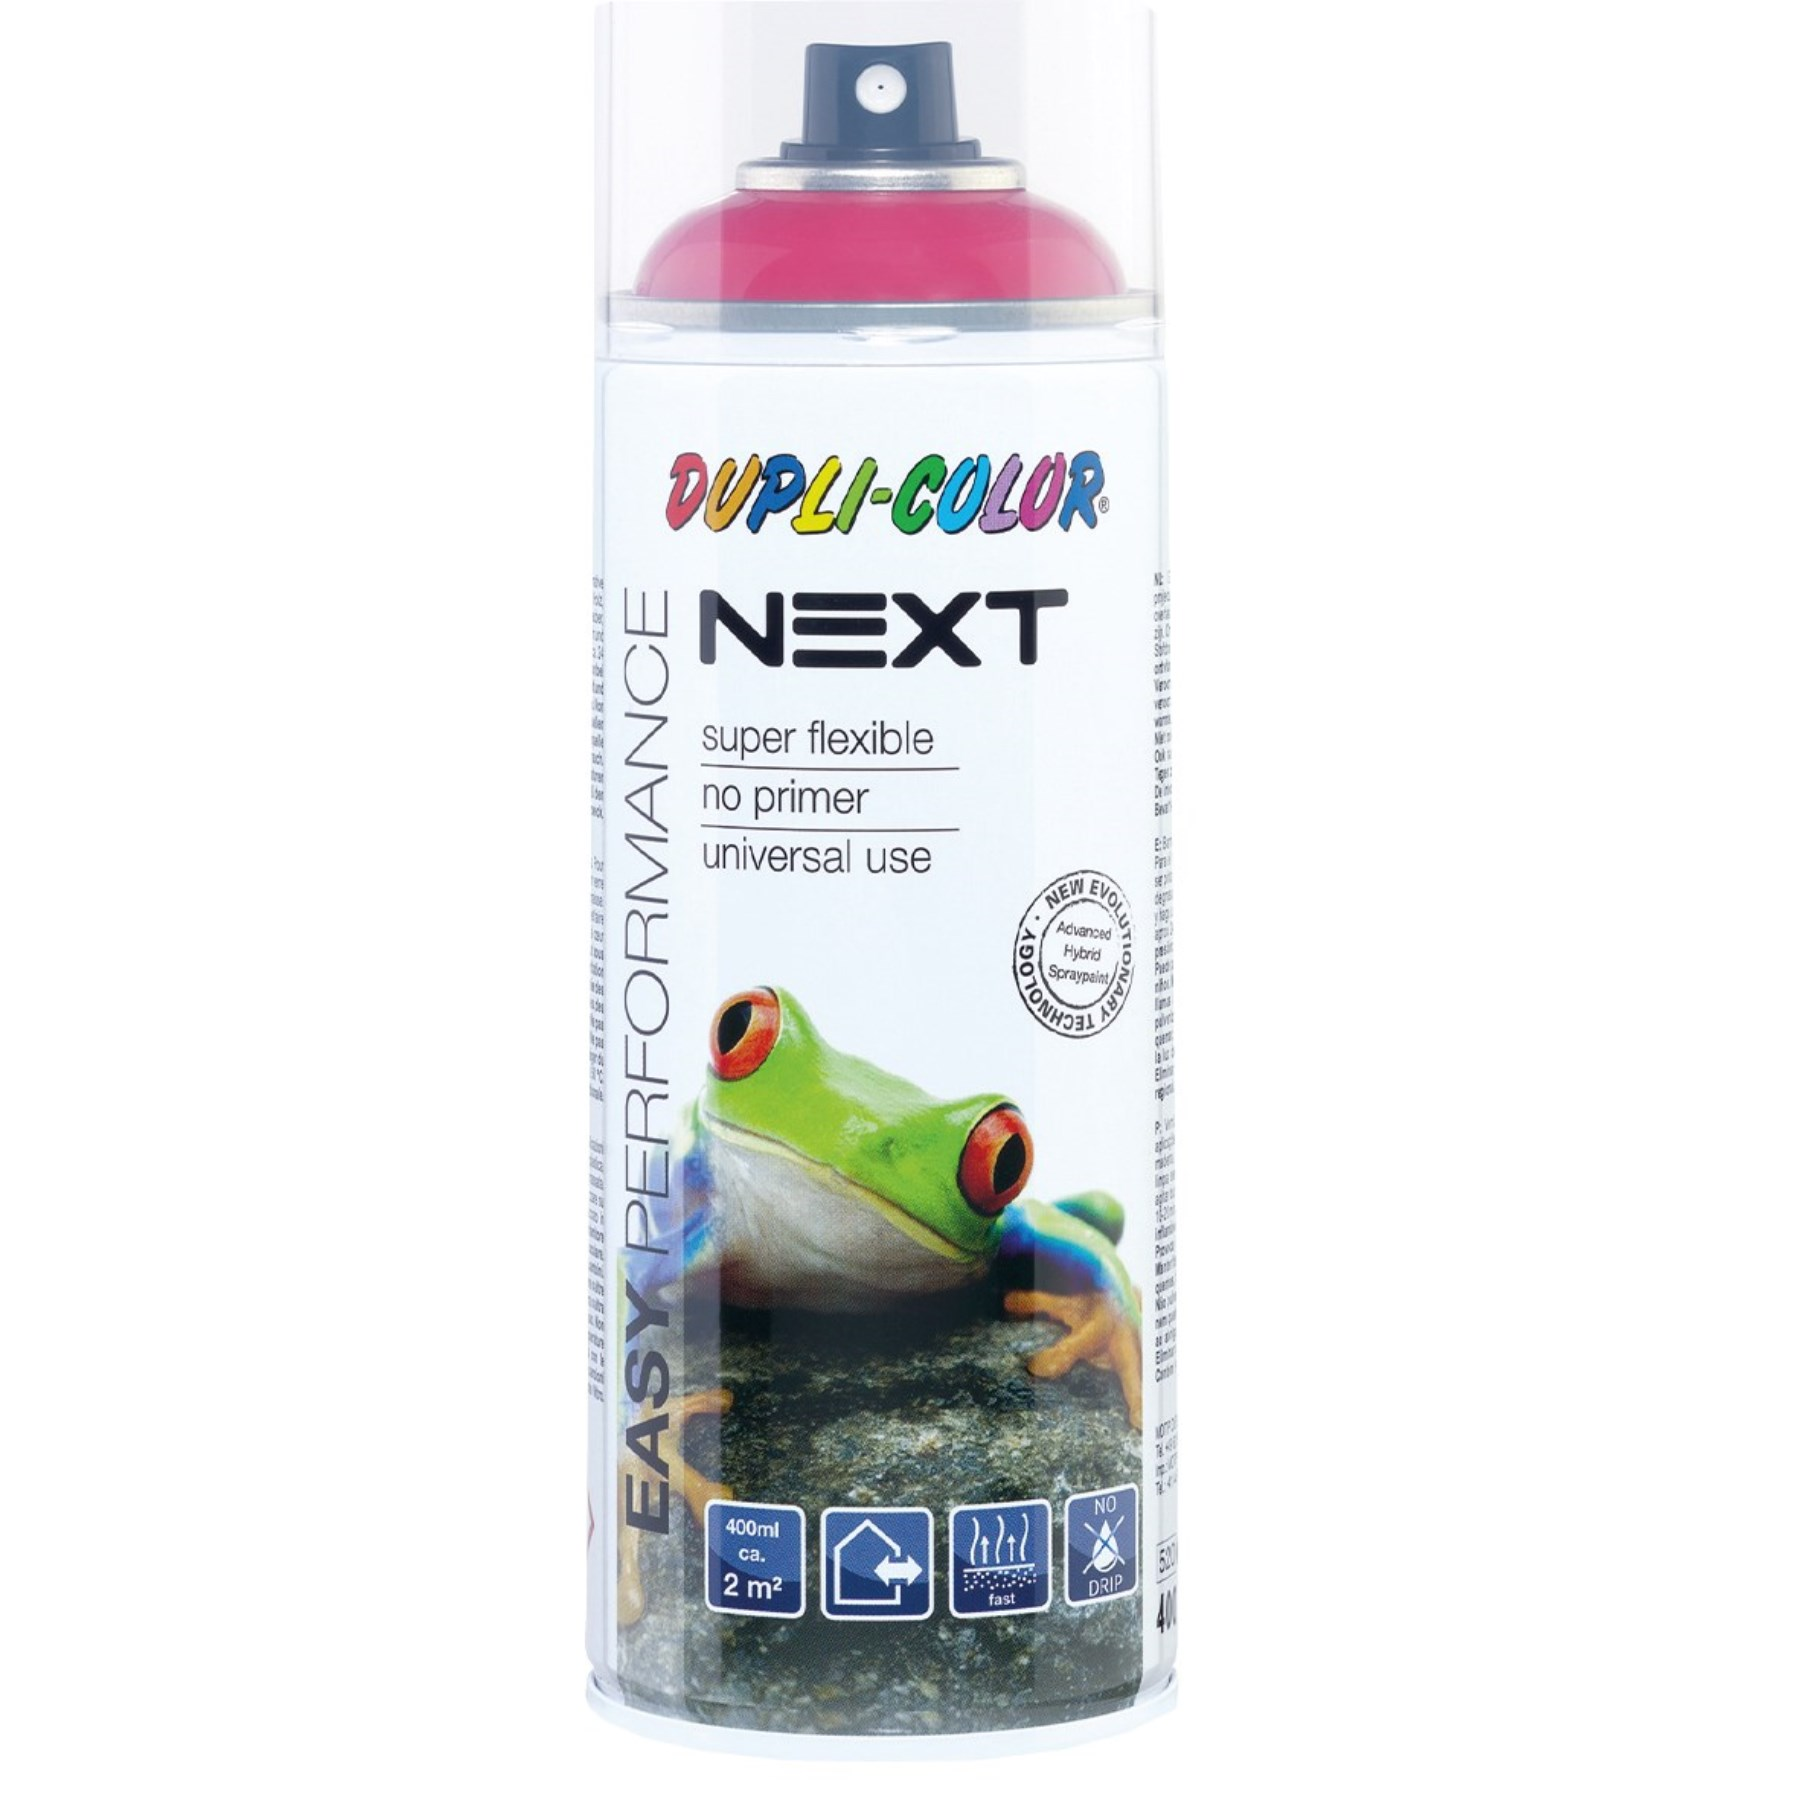 1253842 - NEXT Lackspray RAL 7035 400ml lichtgrau glz.